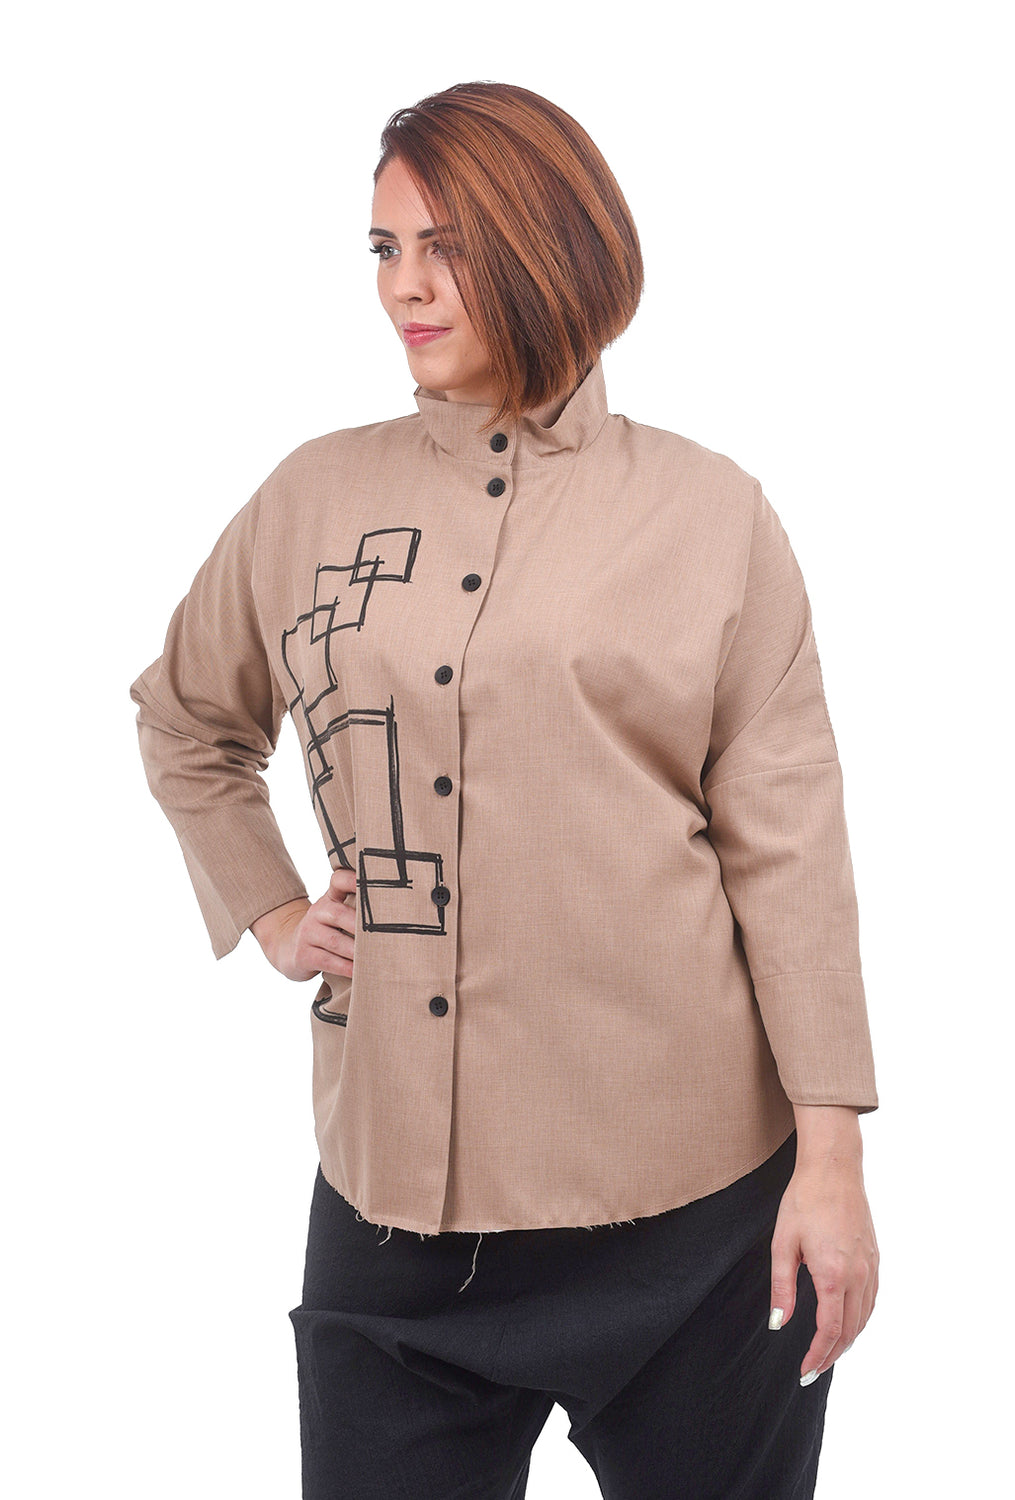 M Square Circular Fragment Shirt Jacket, Beige One Size Beige